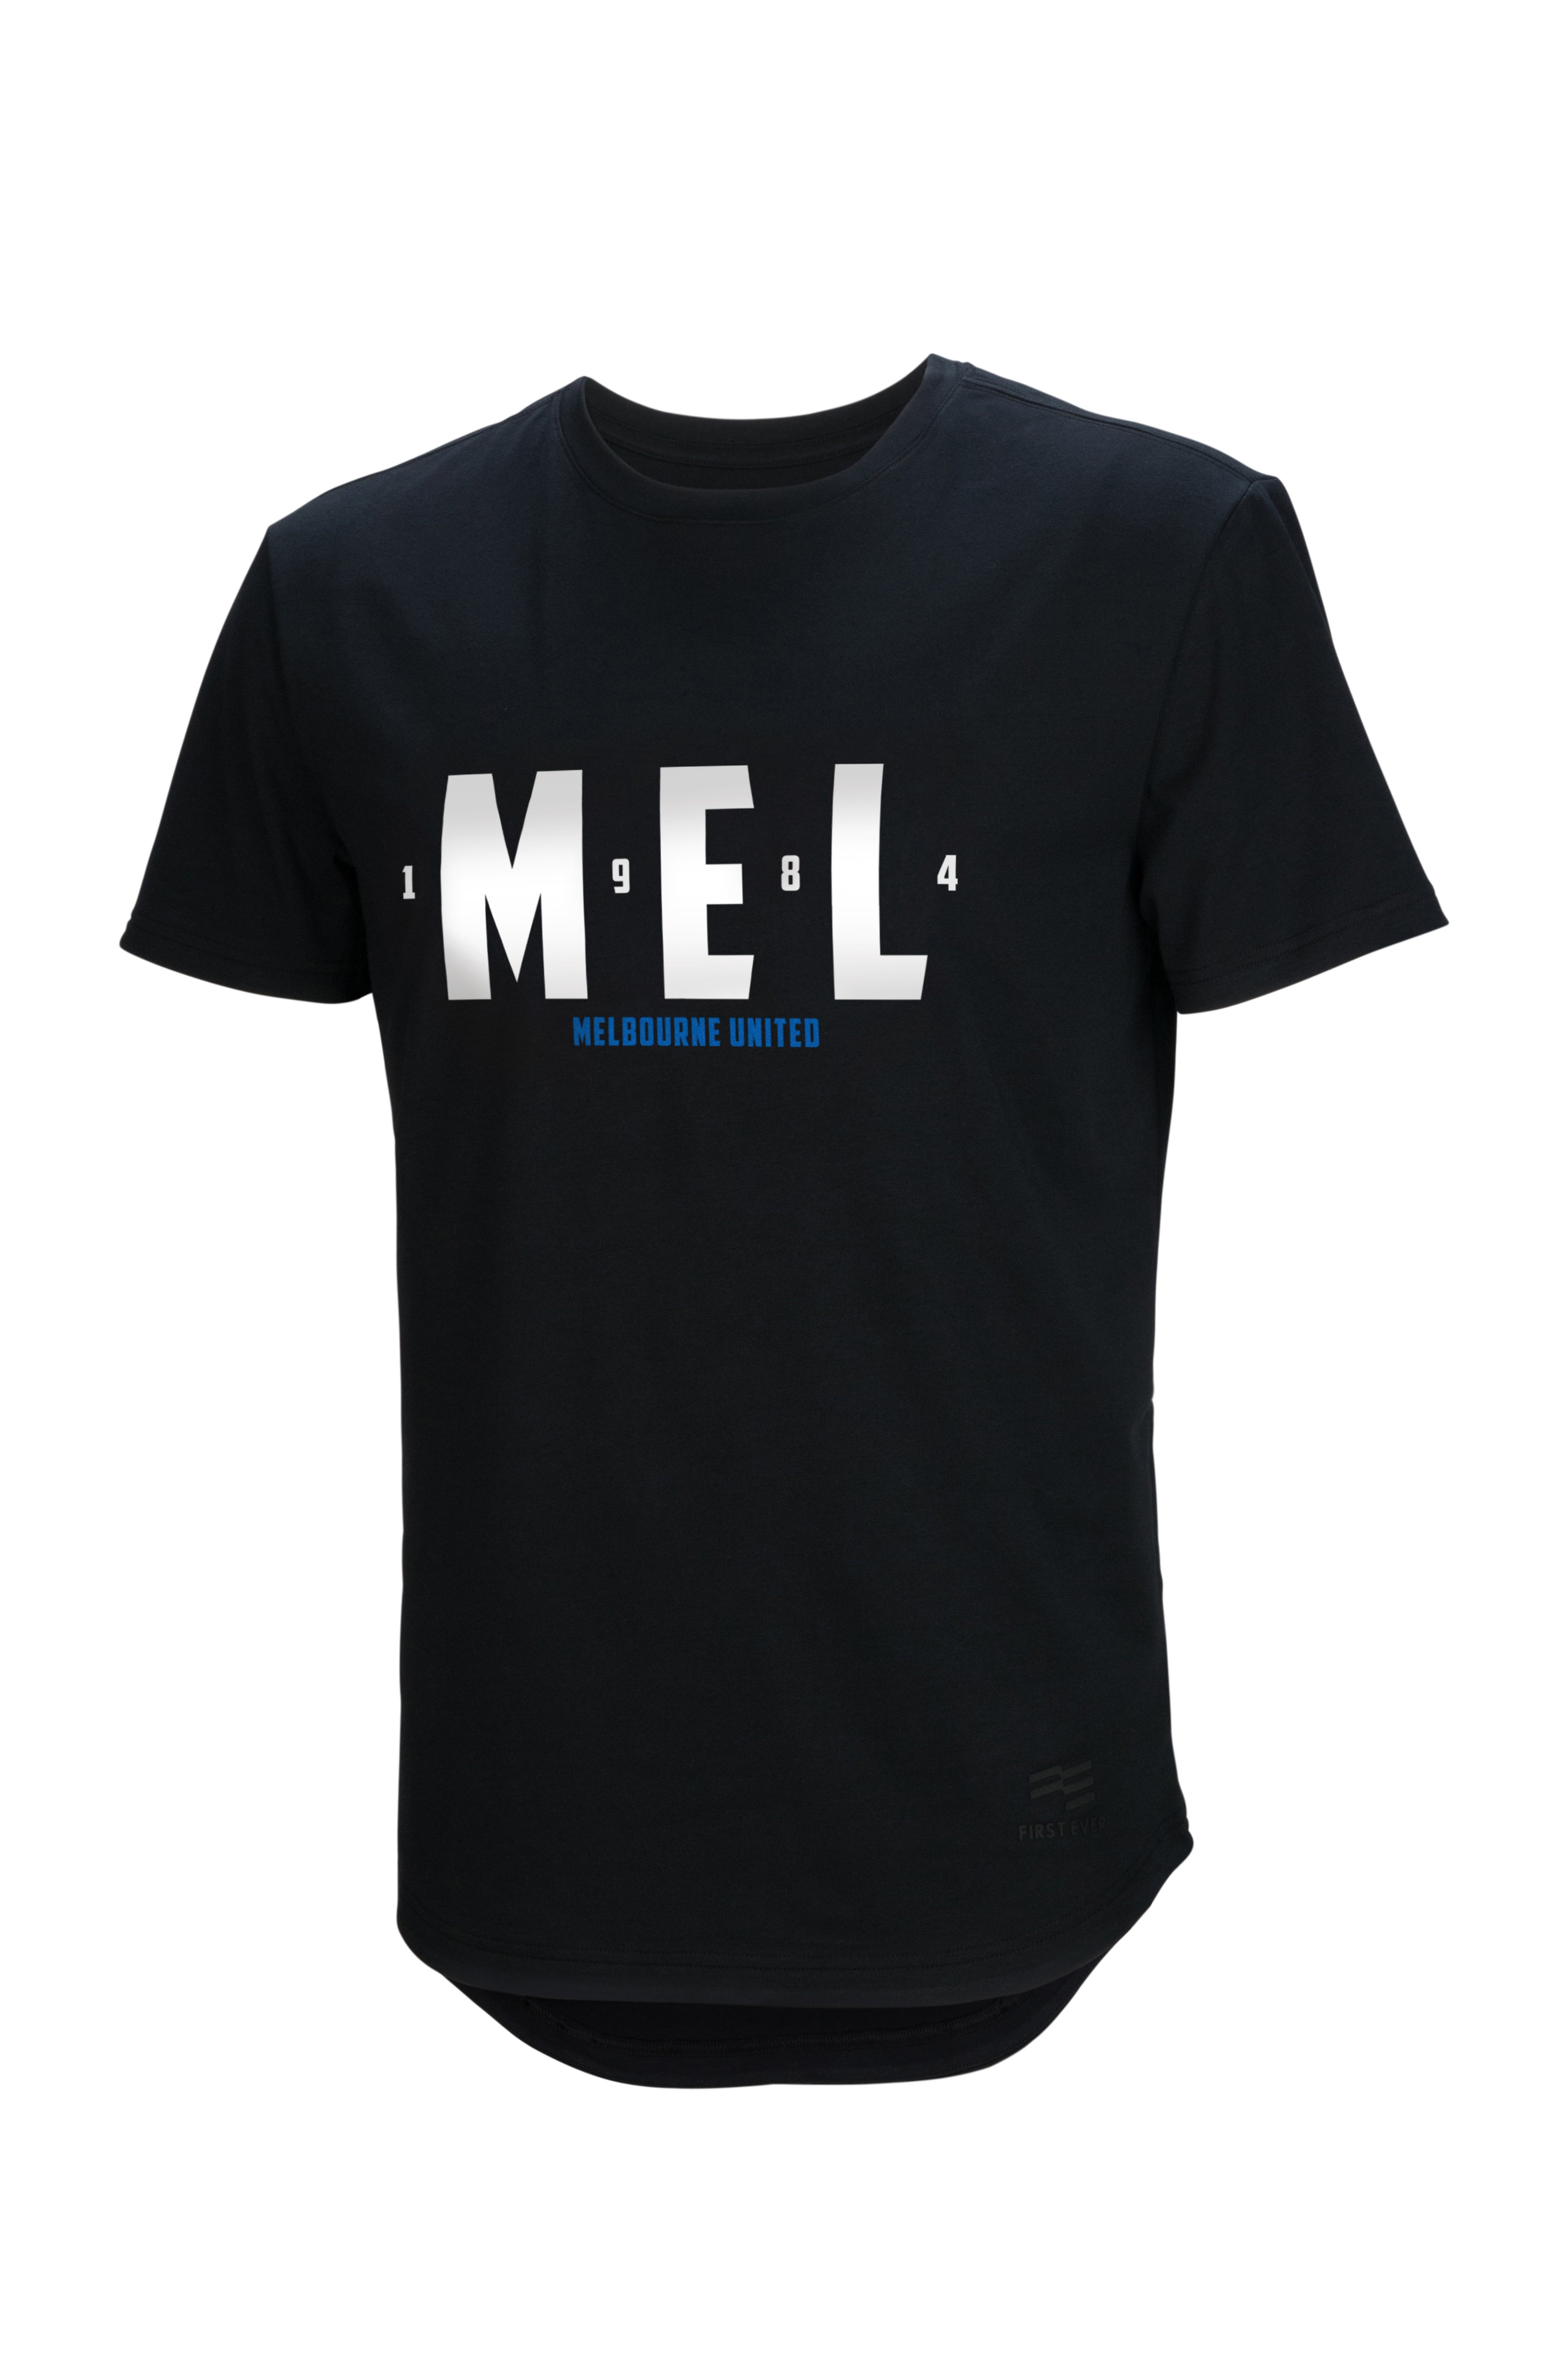 melbourne-united-lifestyle-tee - Front Image